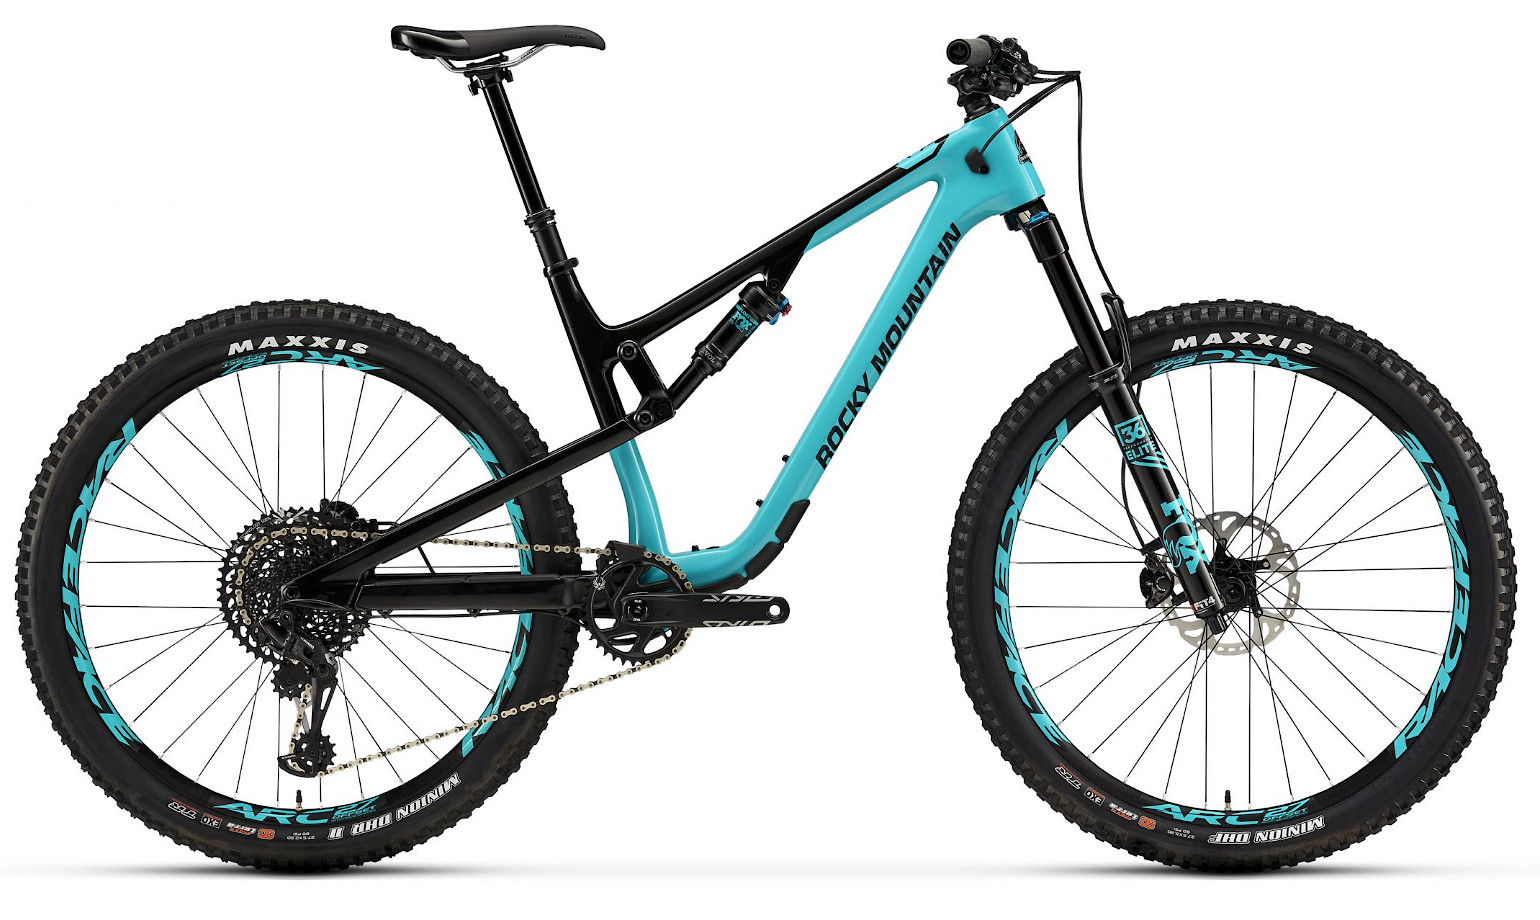 2019 Rocky Mountain Thunderbolt Carbon 90 BC Edition - Turquoise